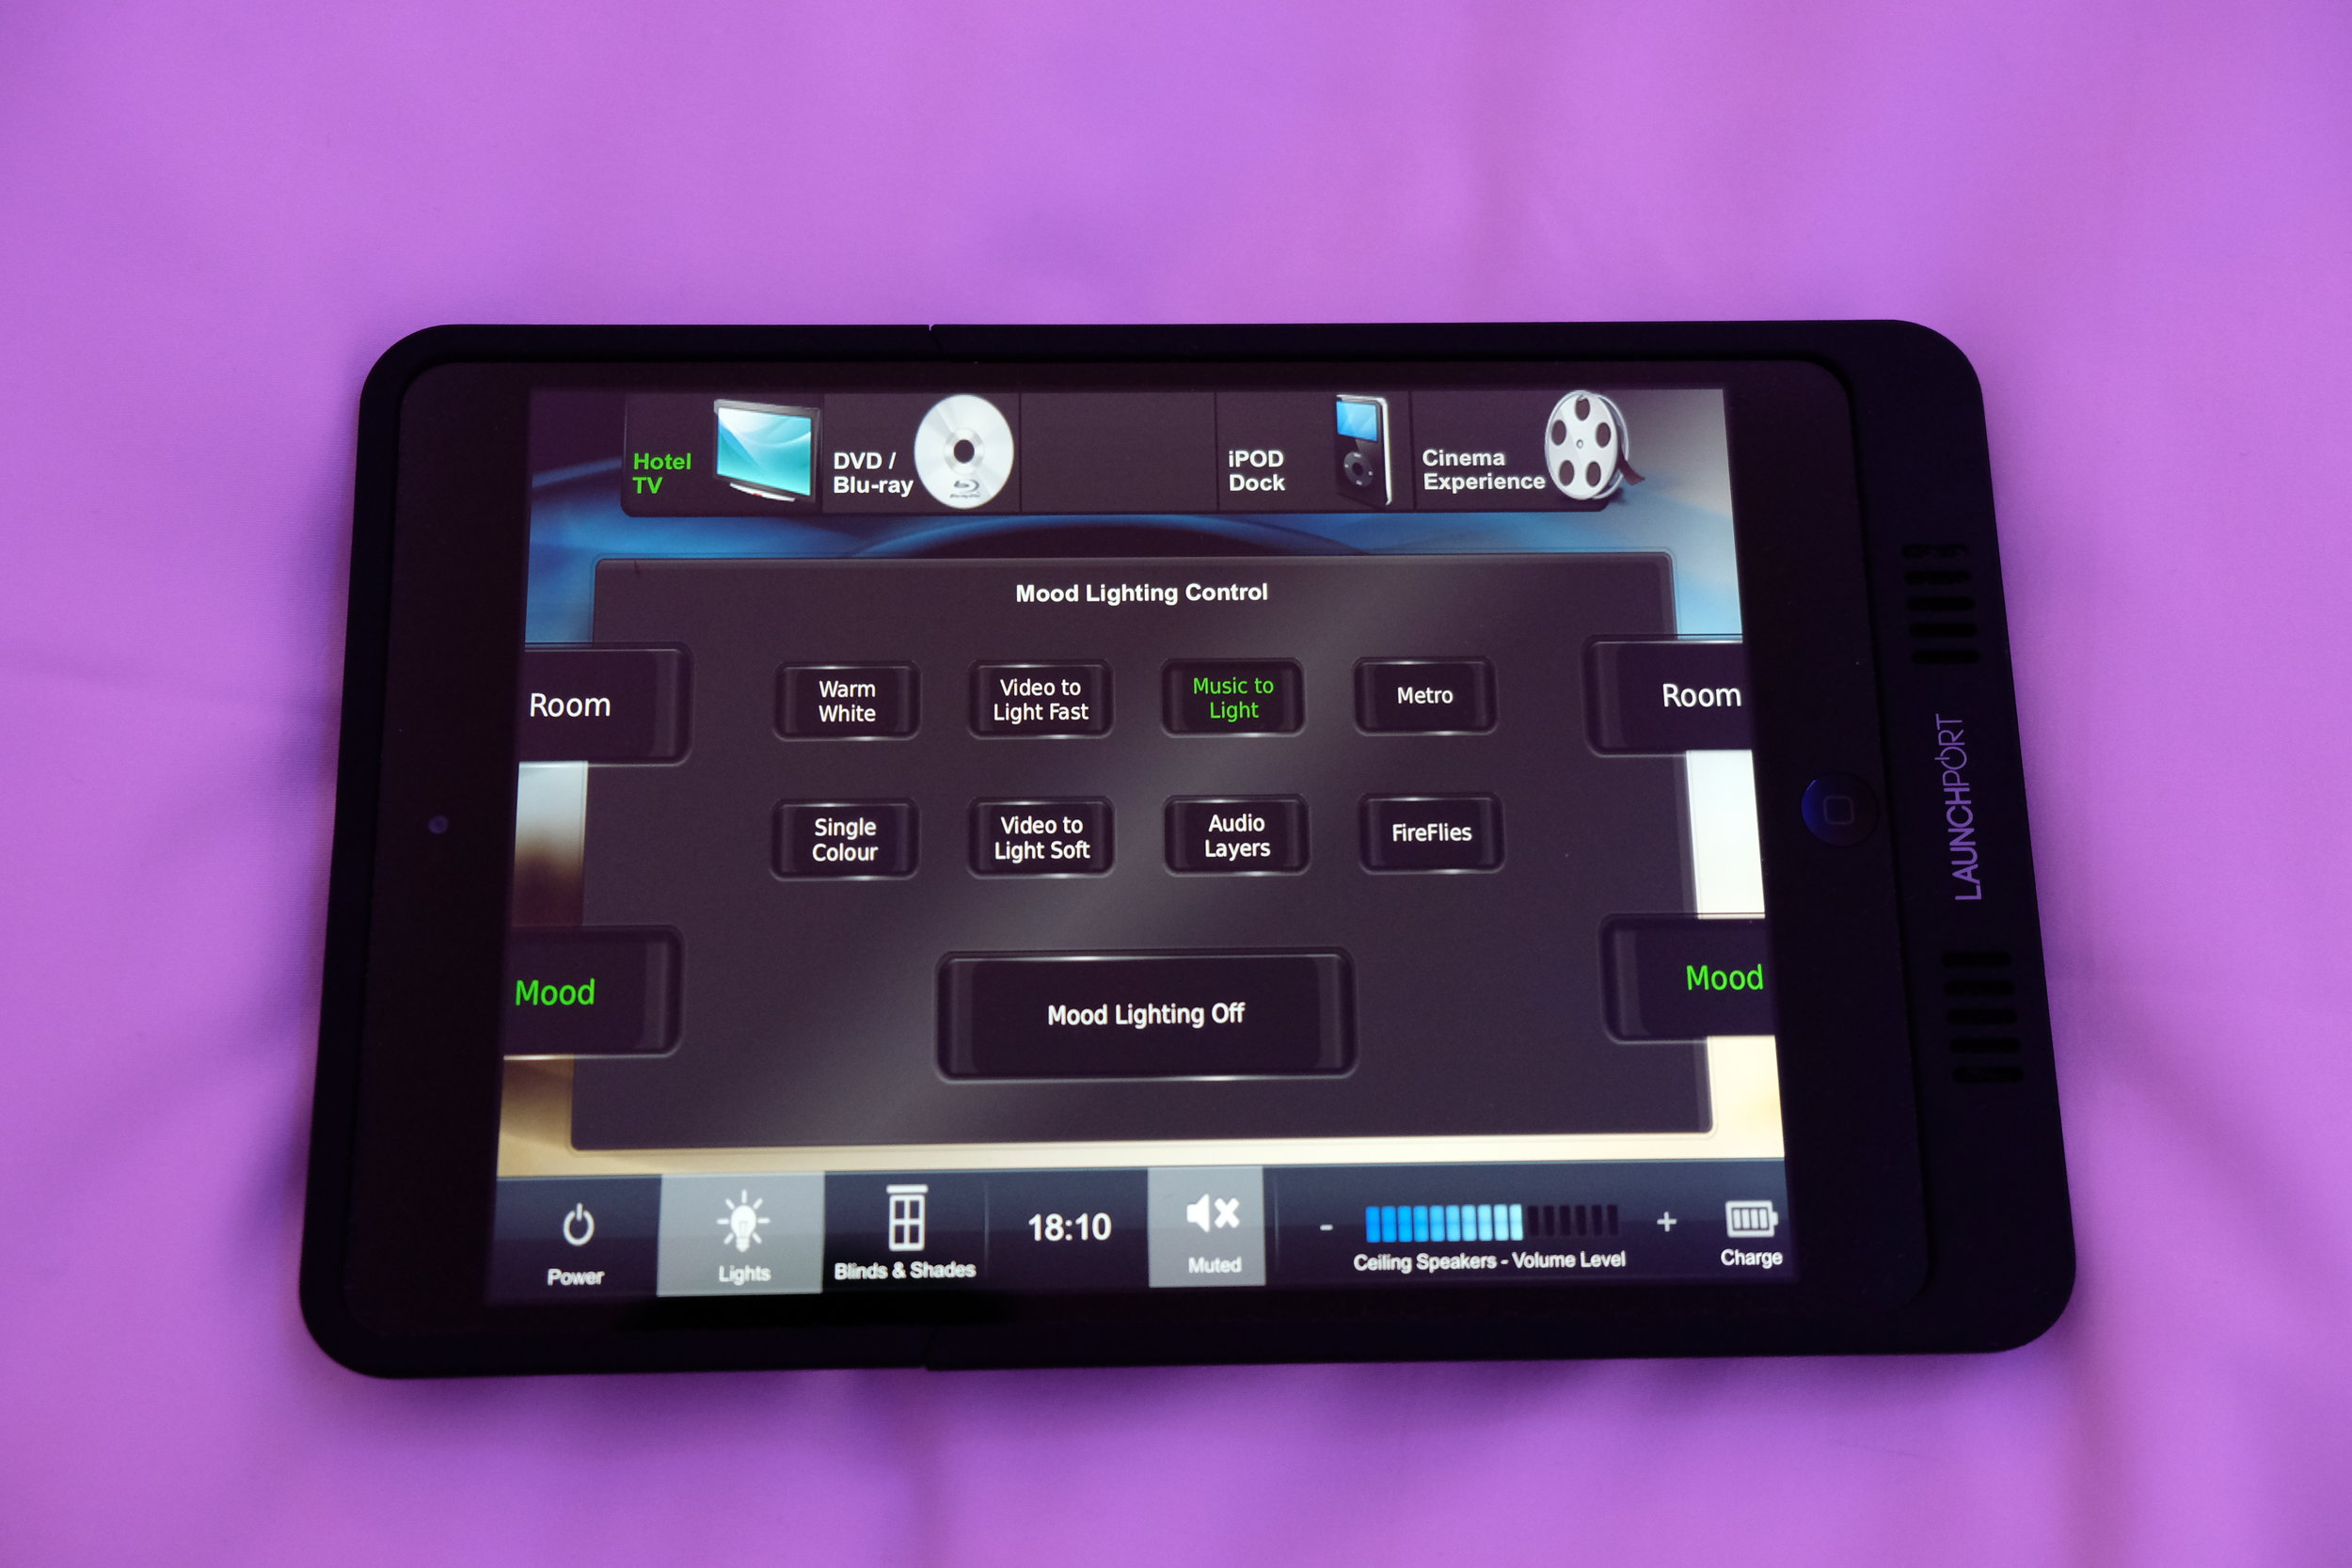 The iPad allows you to control the lighting, tv, curtains, blinds, and mood lighting in the room.